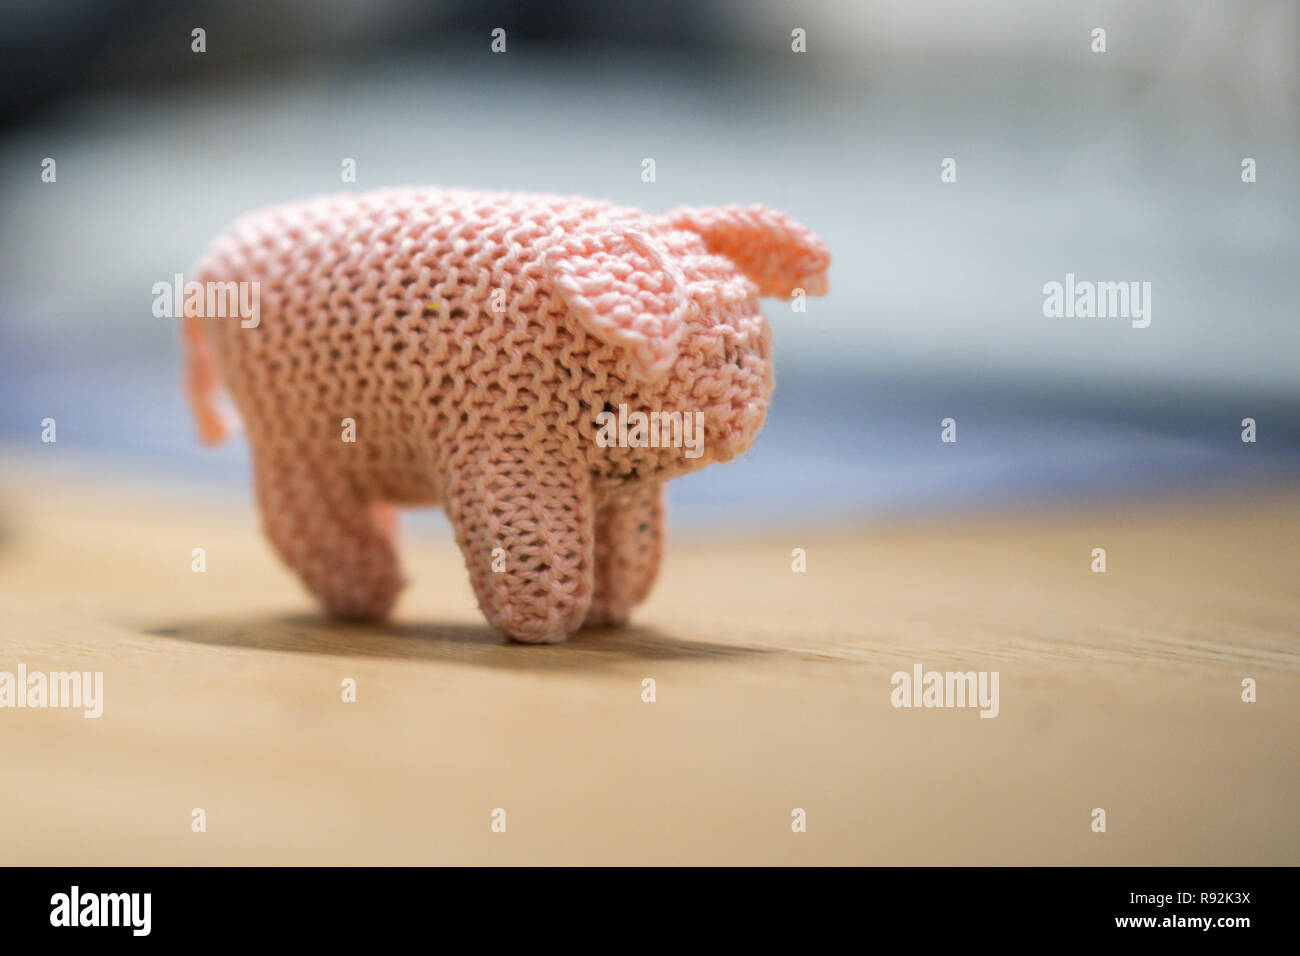 """Oldenburg, Germany. 18th Dec, 2018. A view of a small piglet called Kohlfietjes. Senior women in a housing project produce these by hand. (to dpa """"From Steckenpferd to Löwenhelm - this is how Niedersachsen markets itself"""" from 19.12.2018) Credit: Mohssen Assanimoghaddam/dpa/Alamy Live News Stock Photo"""